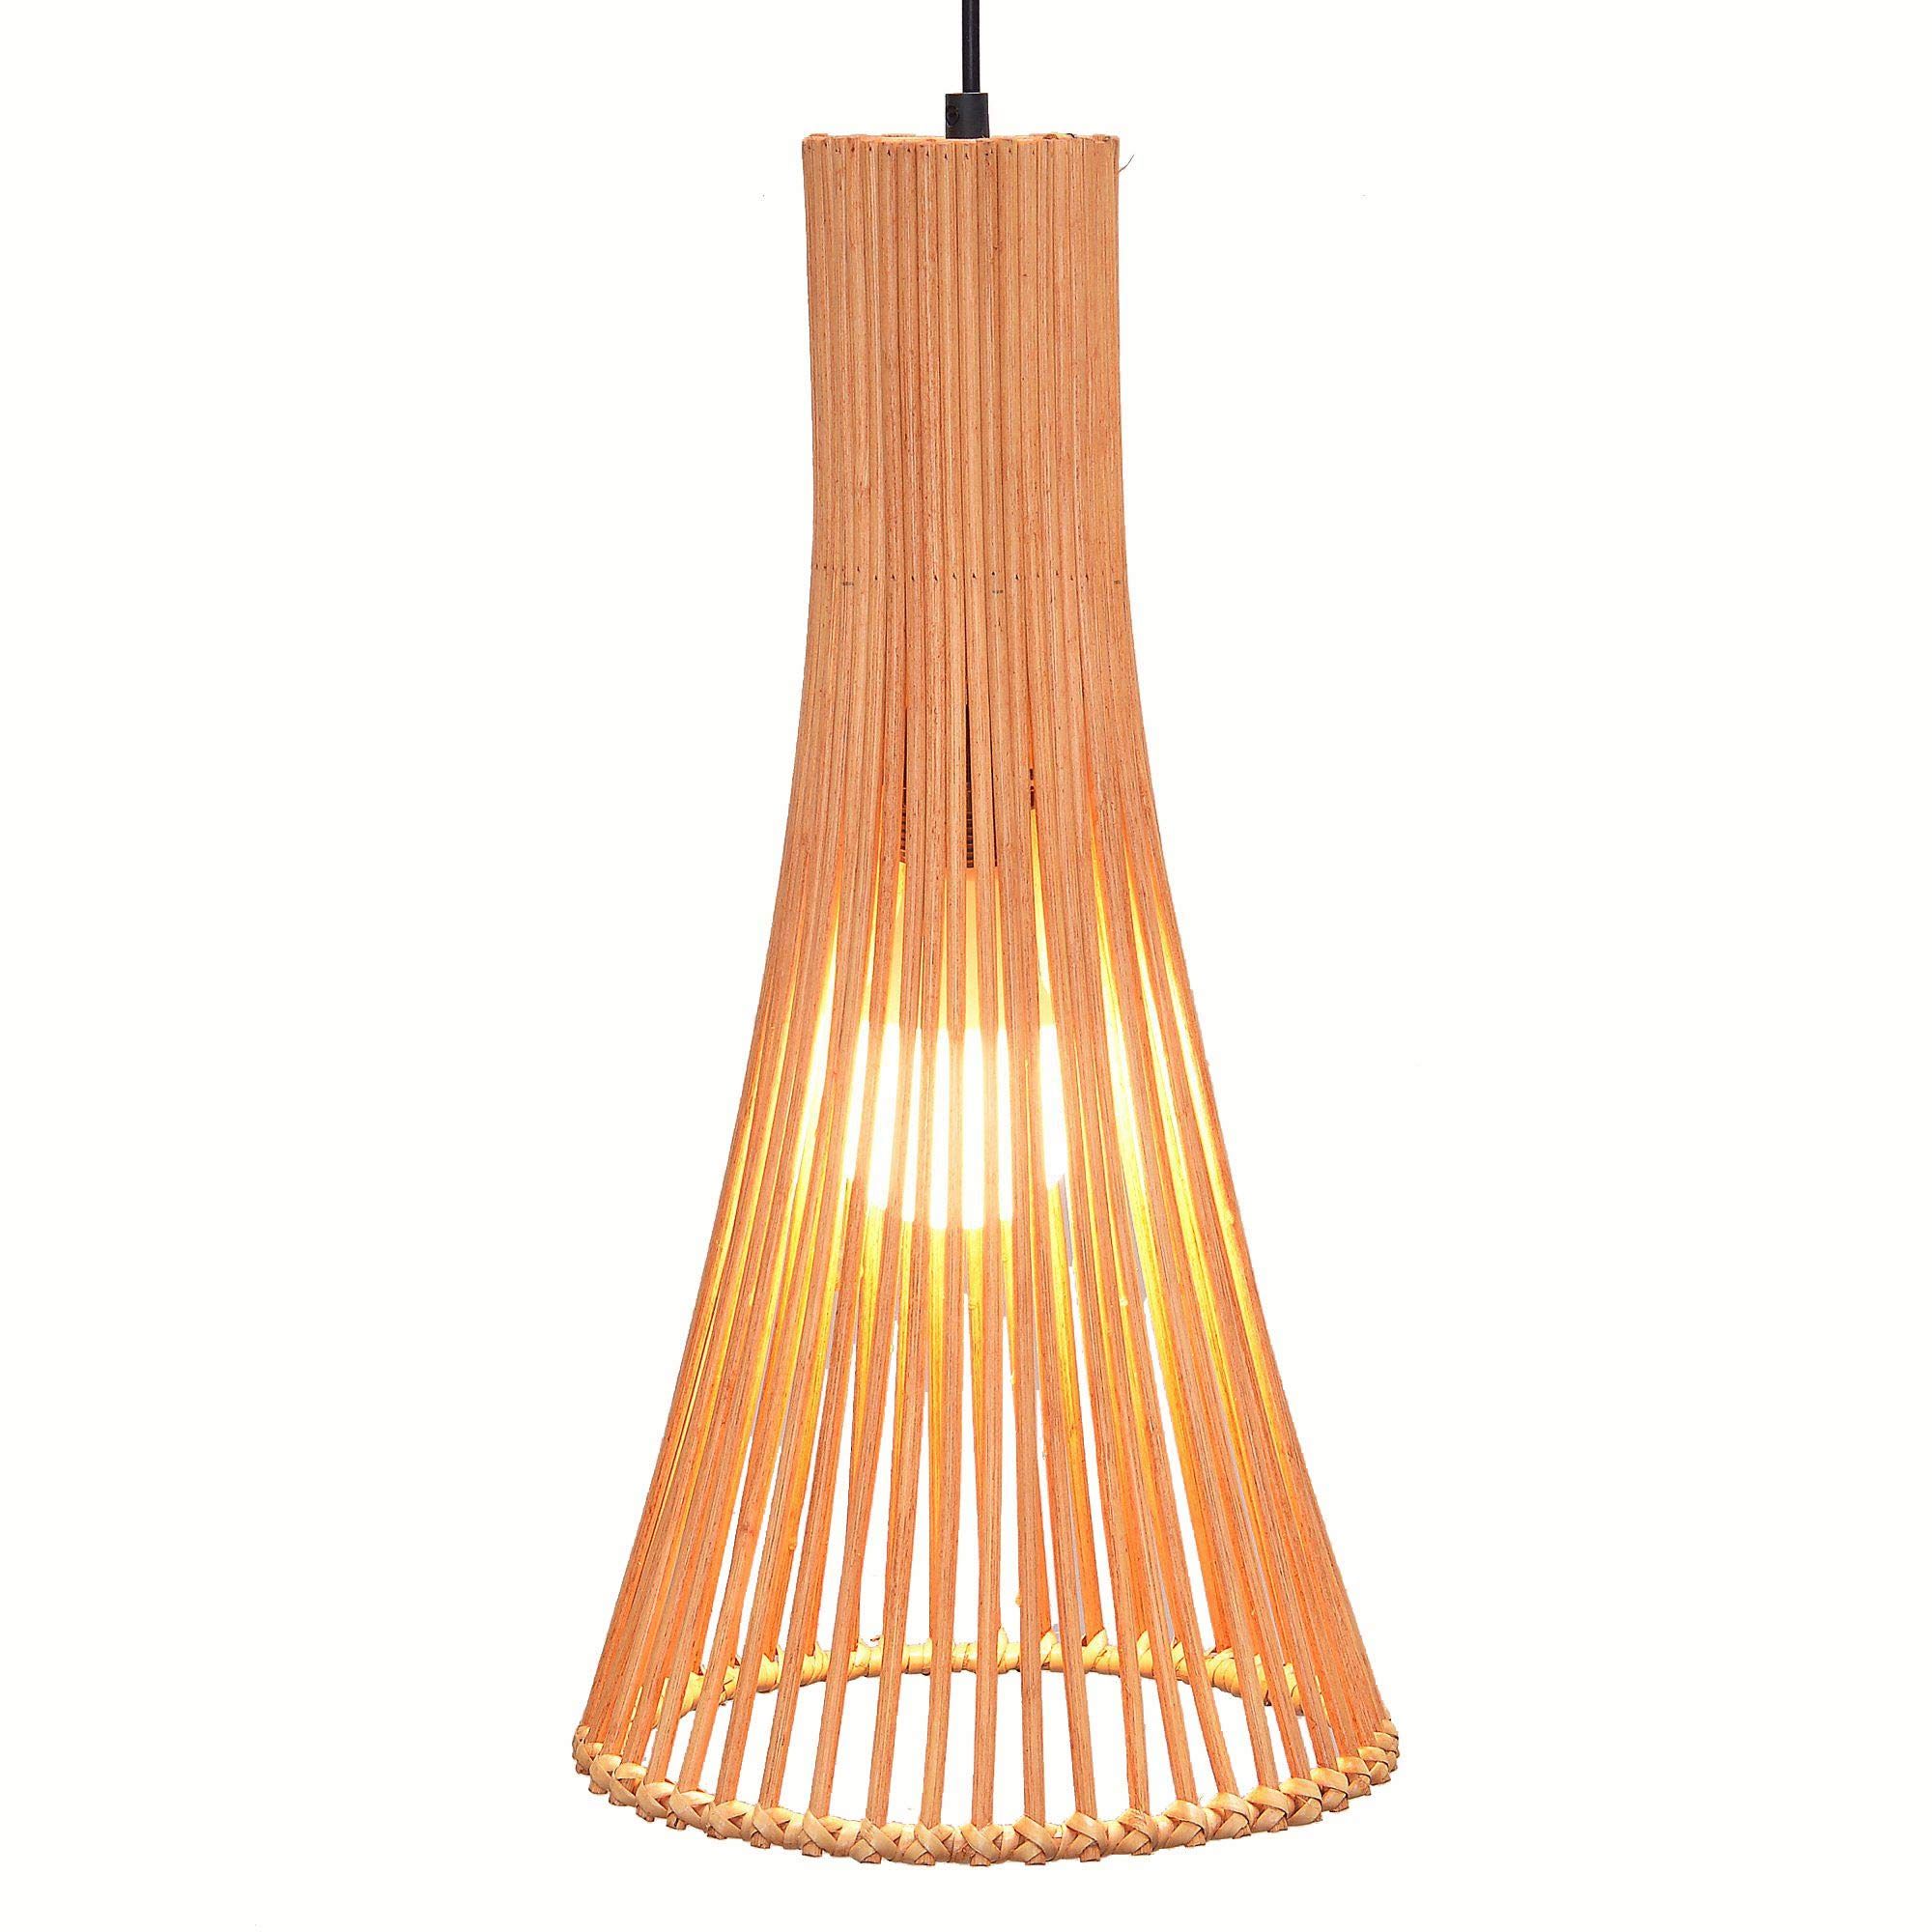 South Asian Bamboo Vse Dining Room Ceiling Pendant Lamp Janpanese Restaurant Pendant Lights Country Rustic Horn Hanging Lamps